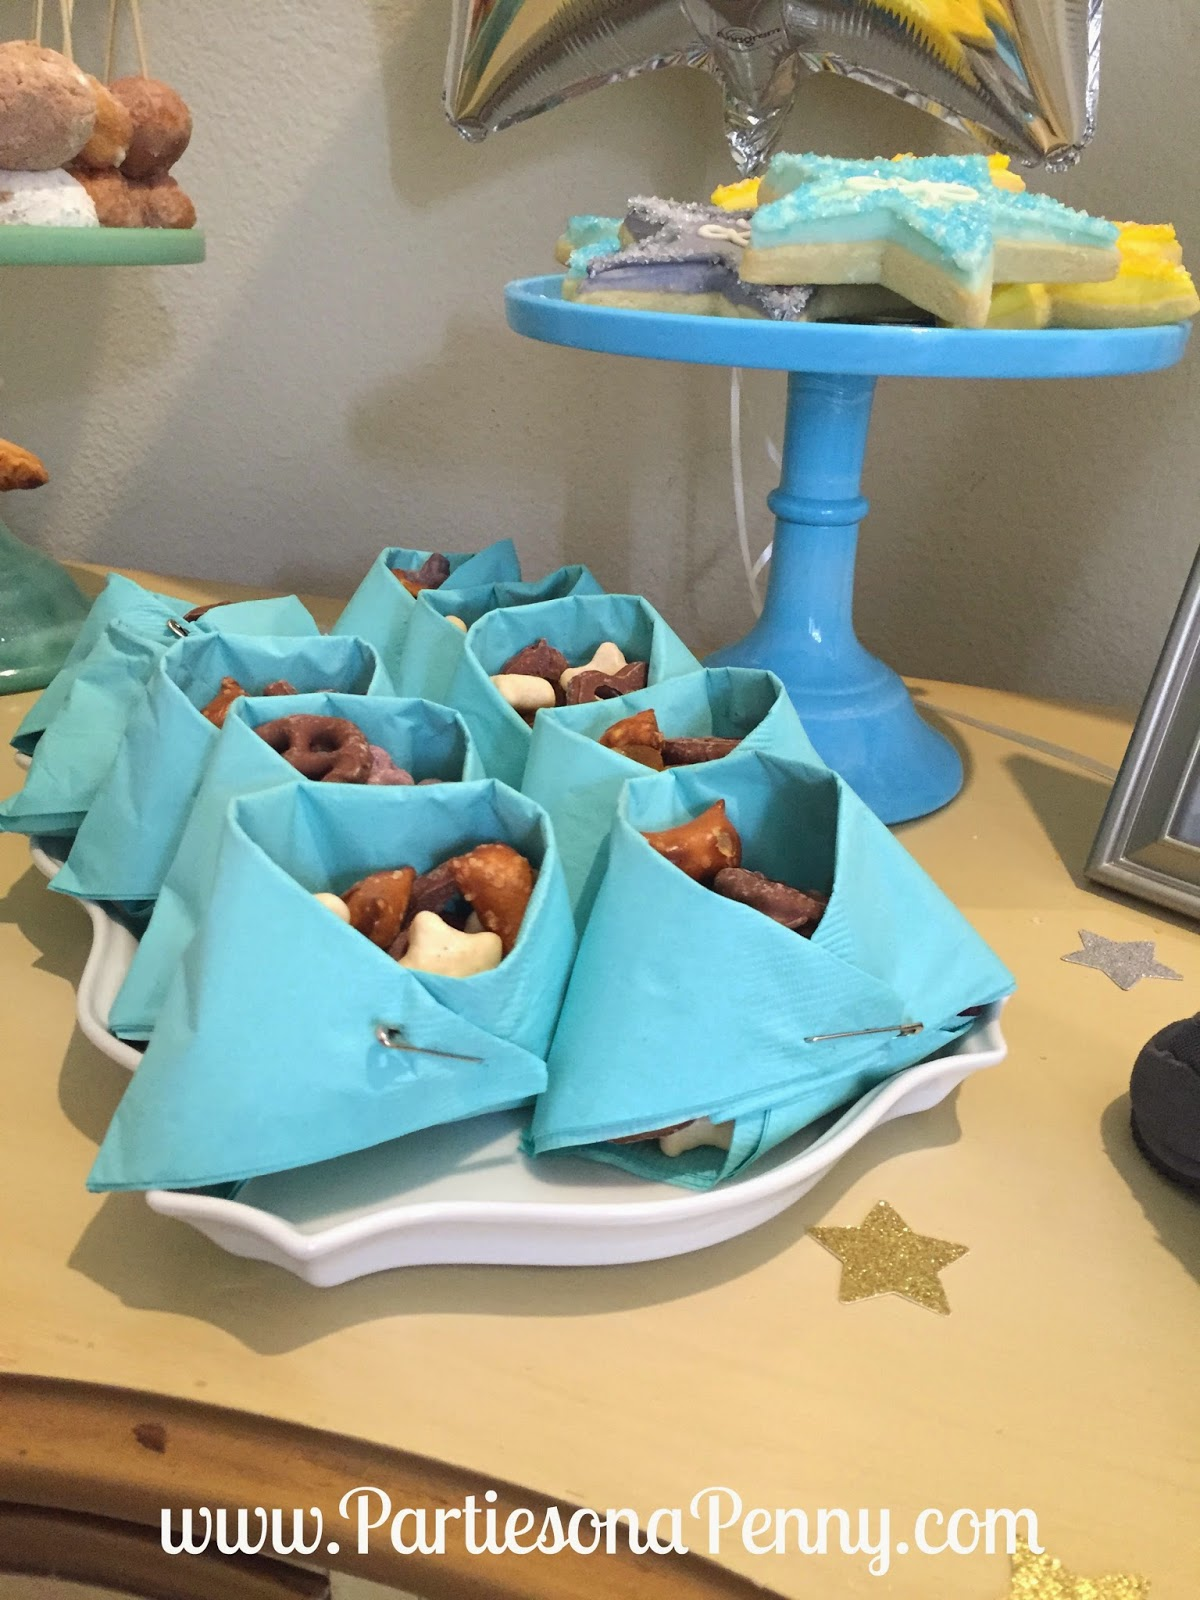 Baby Shower Dessert Ideas For A Boy parties on a penny: twinkle twinkle little star baby shower dessert